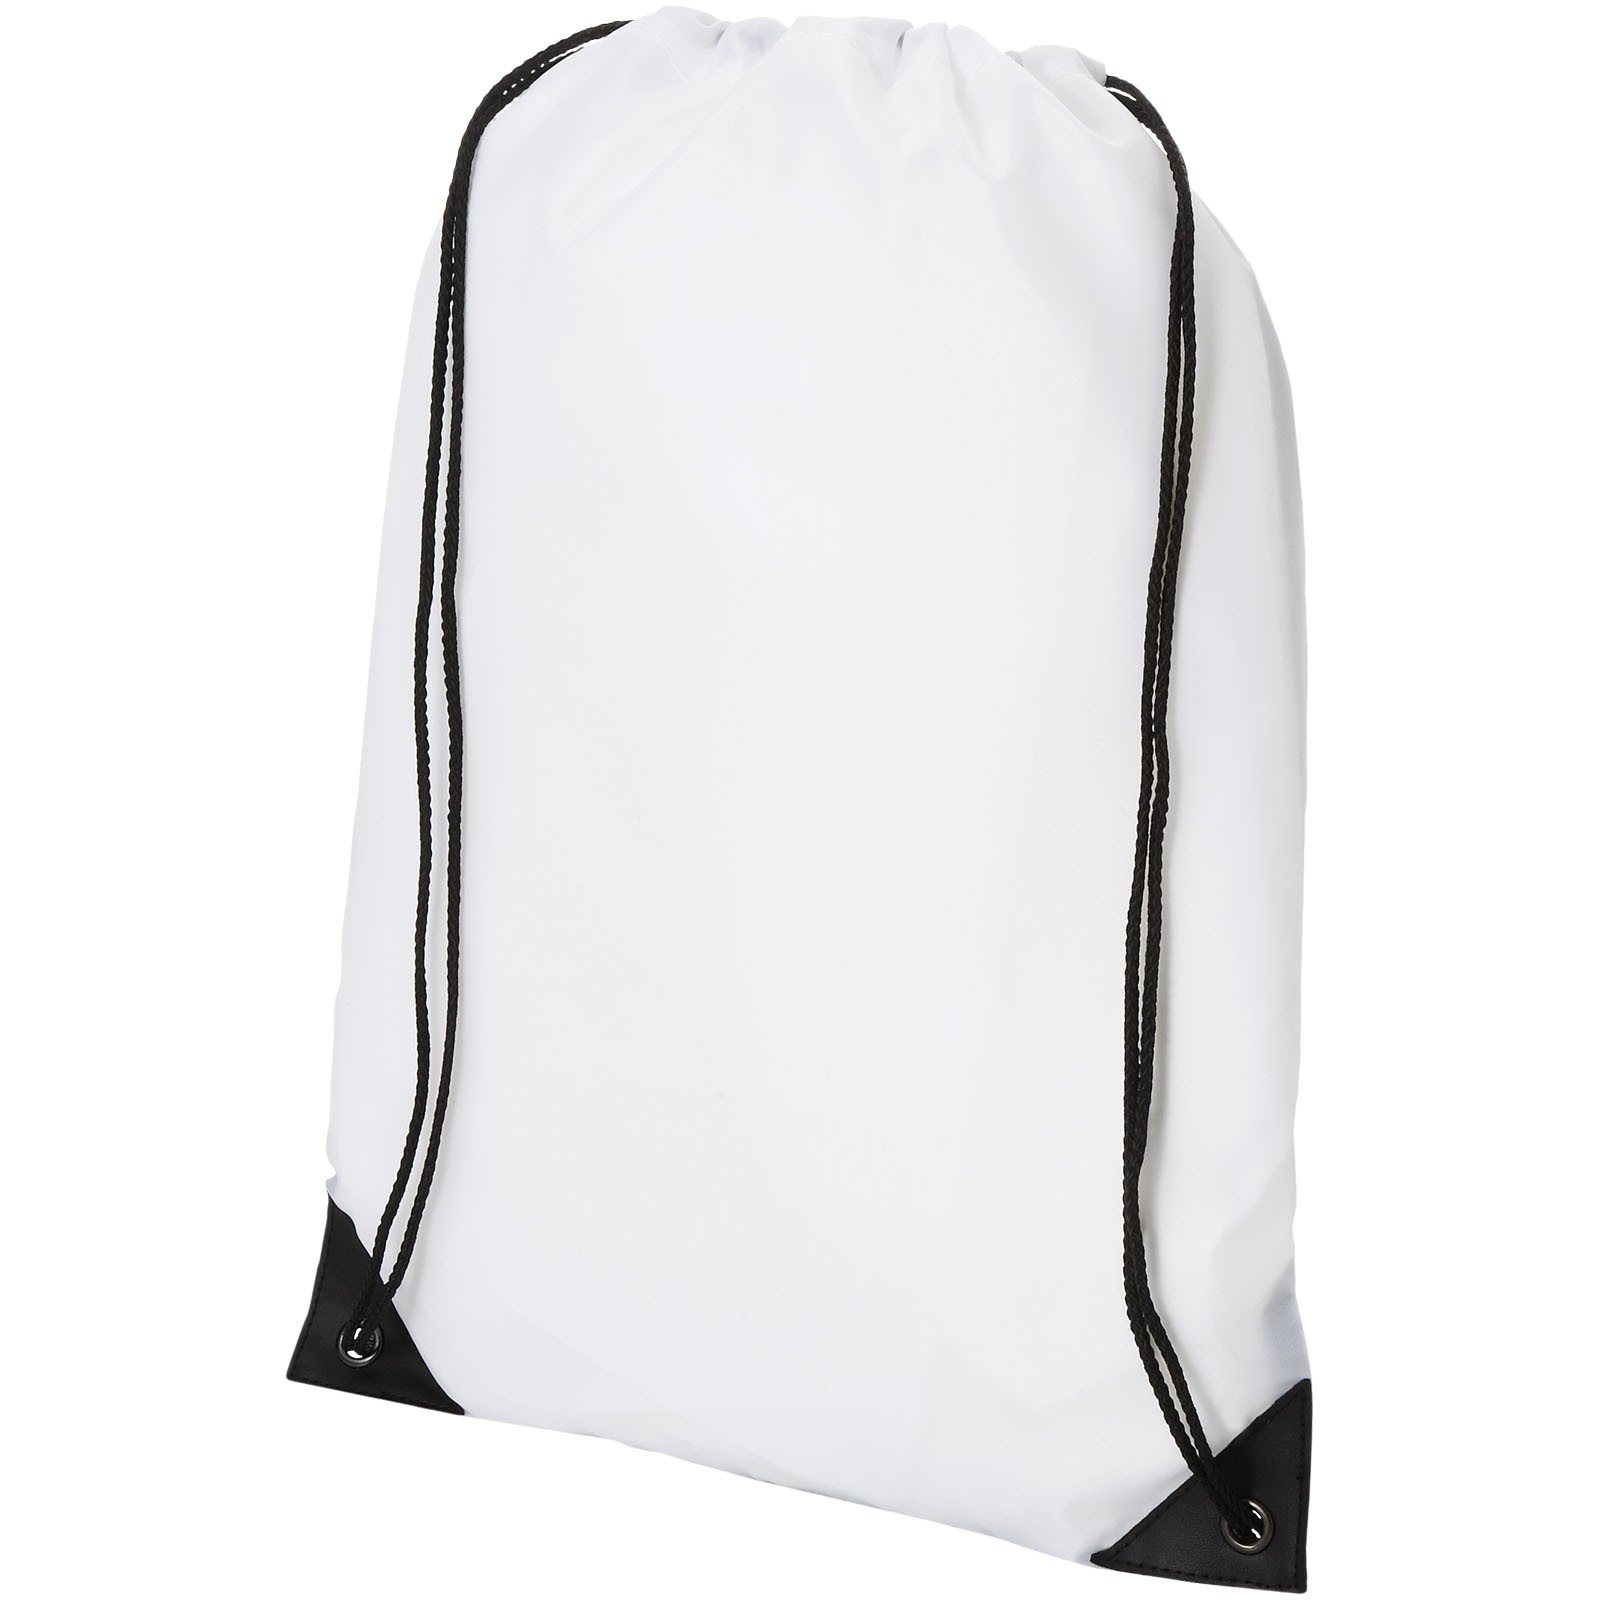 Condor polyester and non-woven drawstring backpack - White